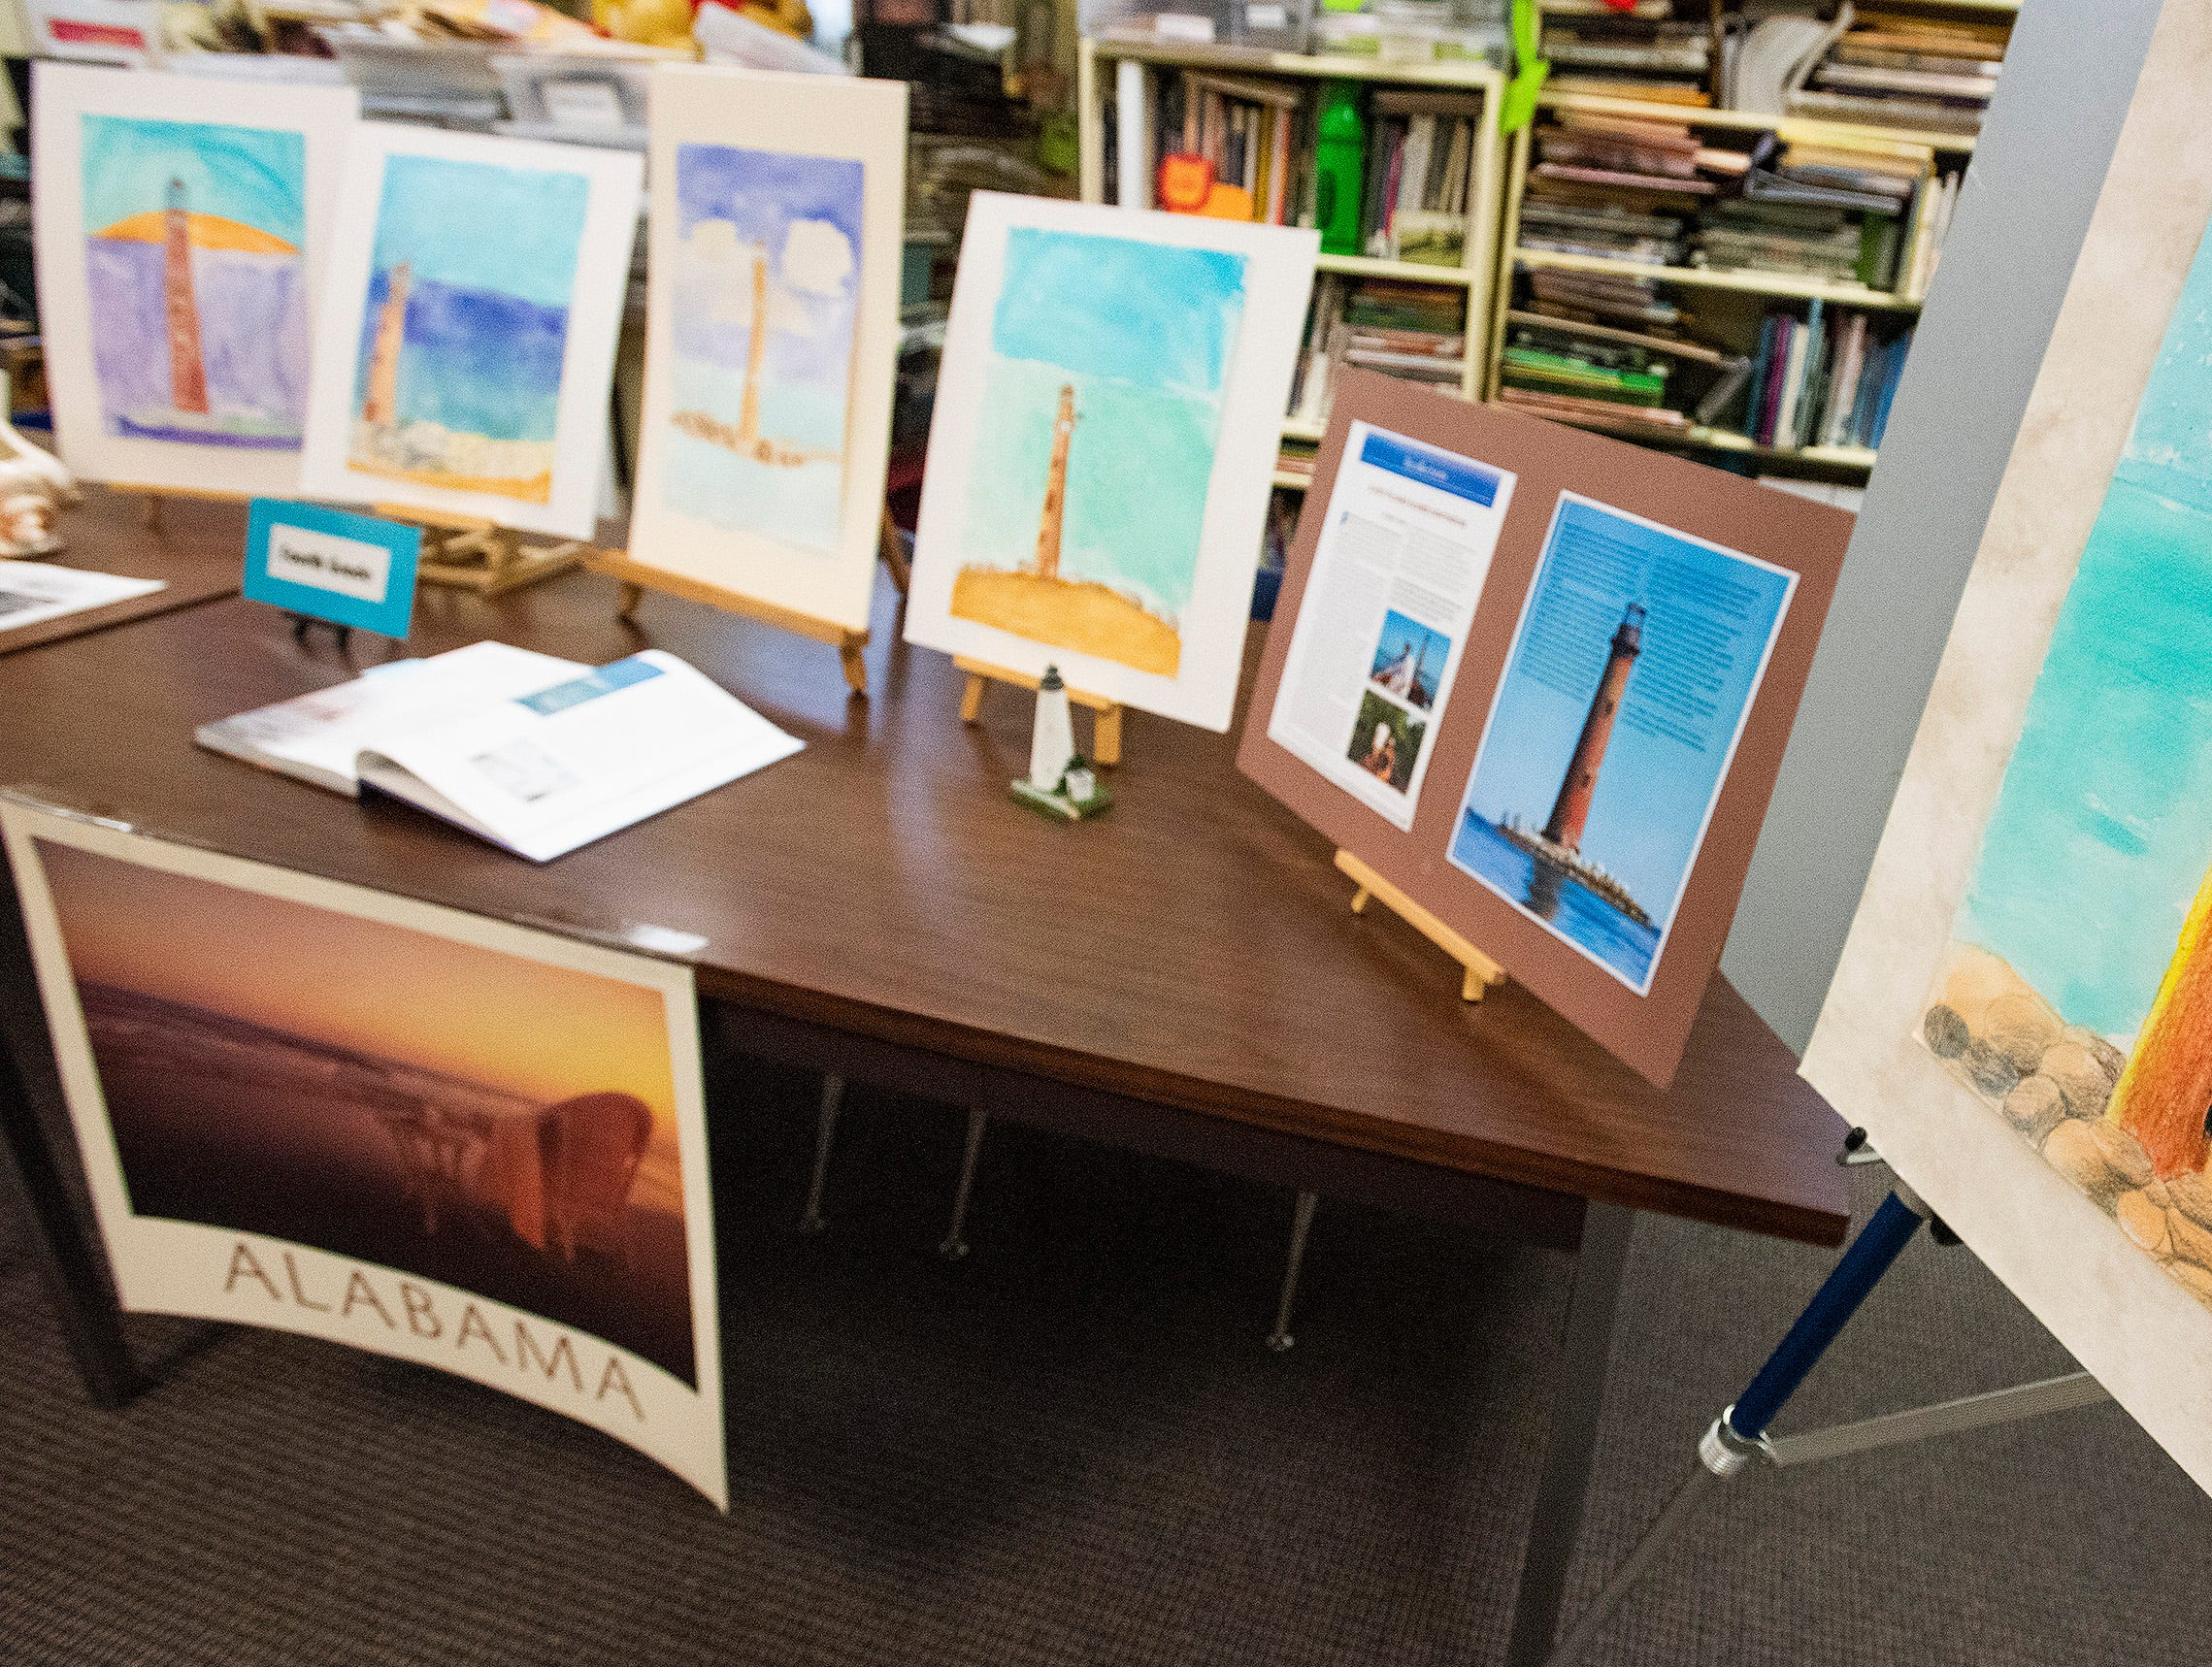 Students artwork representing Alabama is displayed while the school celebrates the Alabama Bicentennial at Holy Cross Episcopal School in Montgomery, Ala., on Friday February 15, 2019.